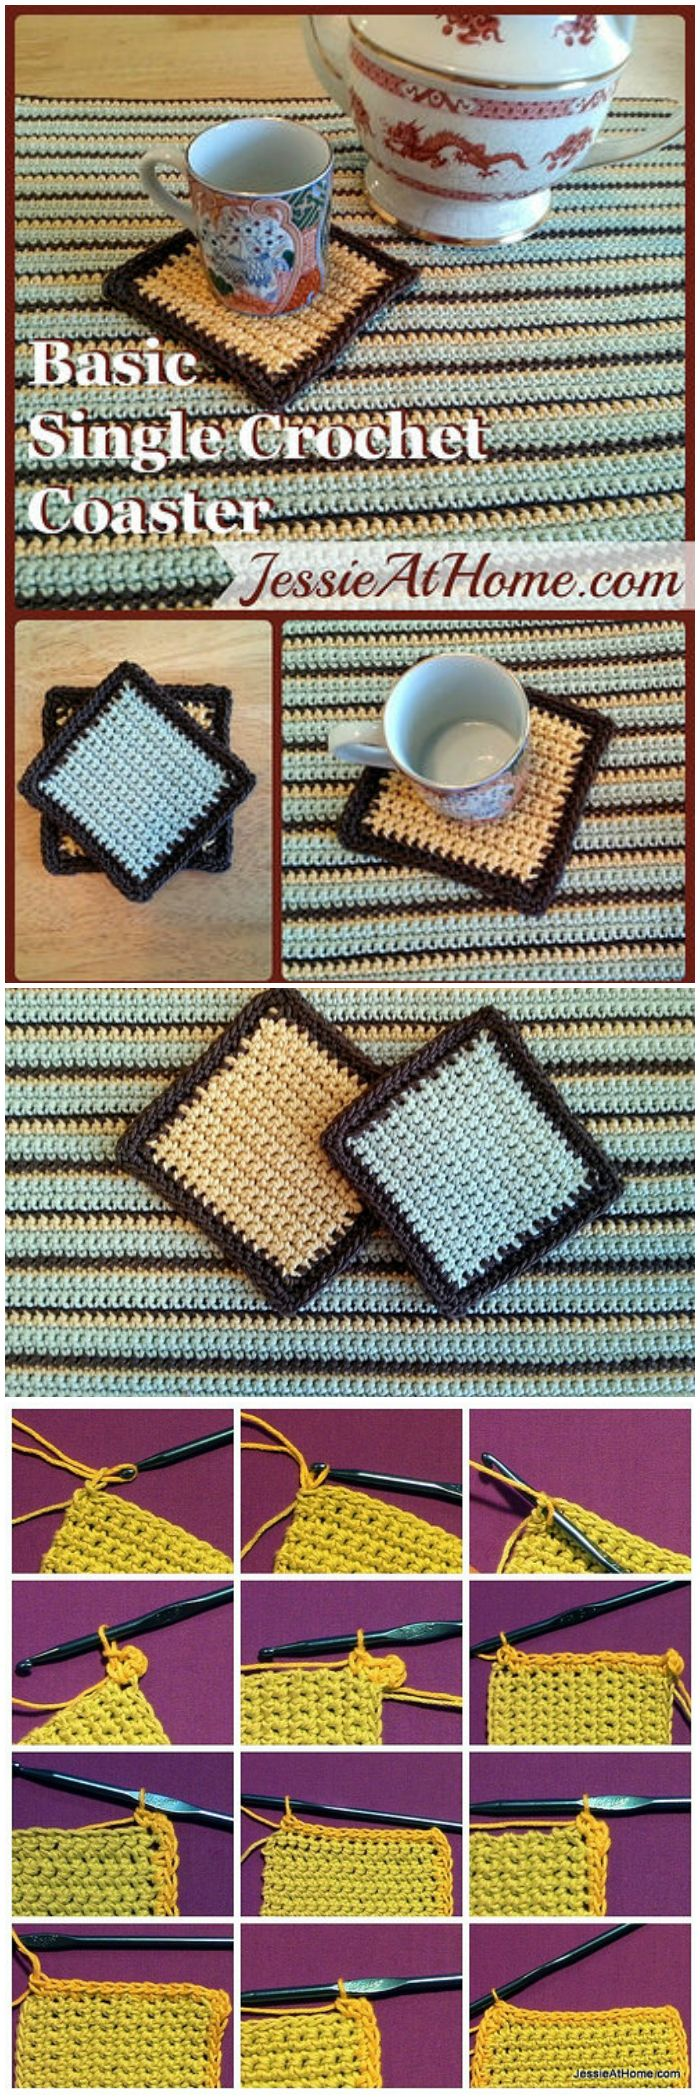 Best 25 crochet coaster pattern free ideas on pinterest crochet free crochet coaster patterns look very beautiful and cute with the soft yarn and the different bankloansurffo Images